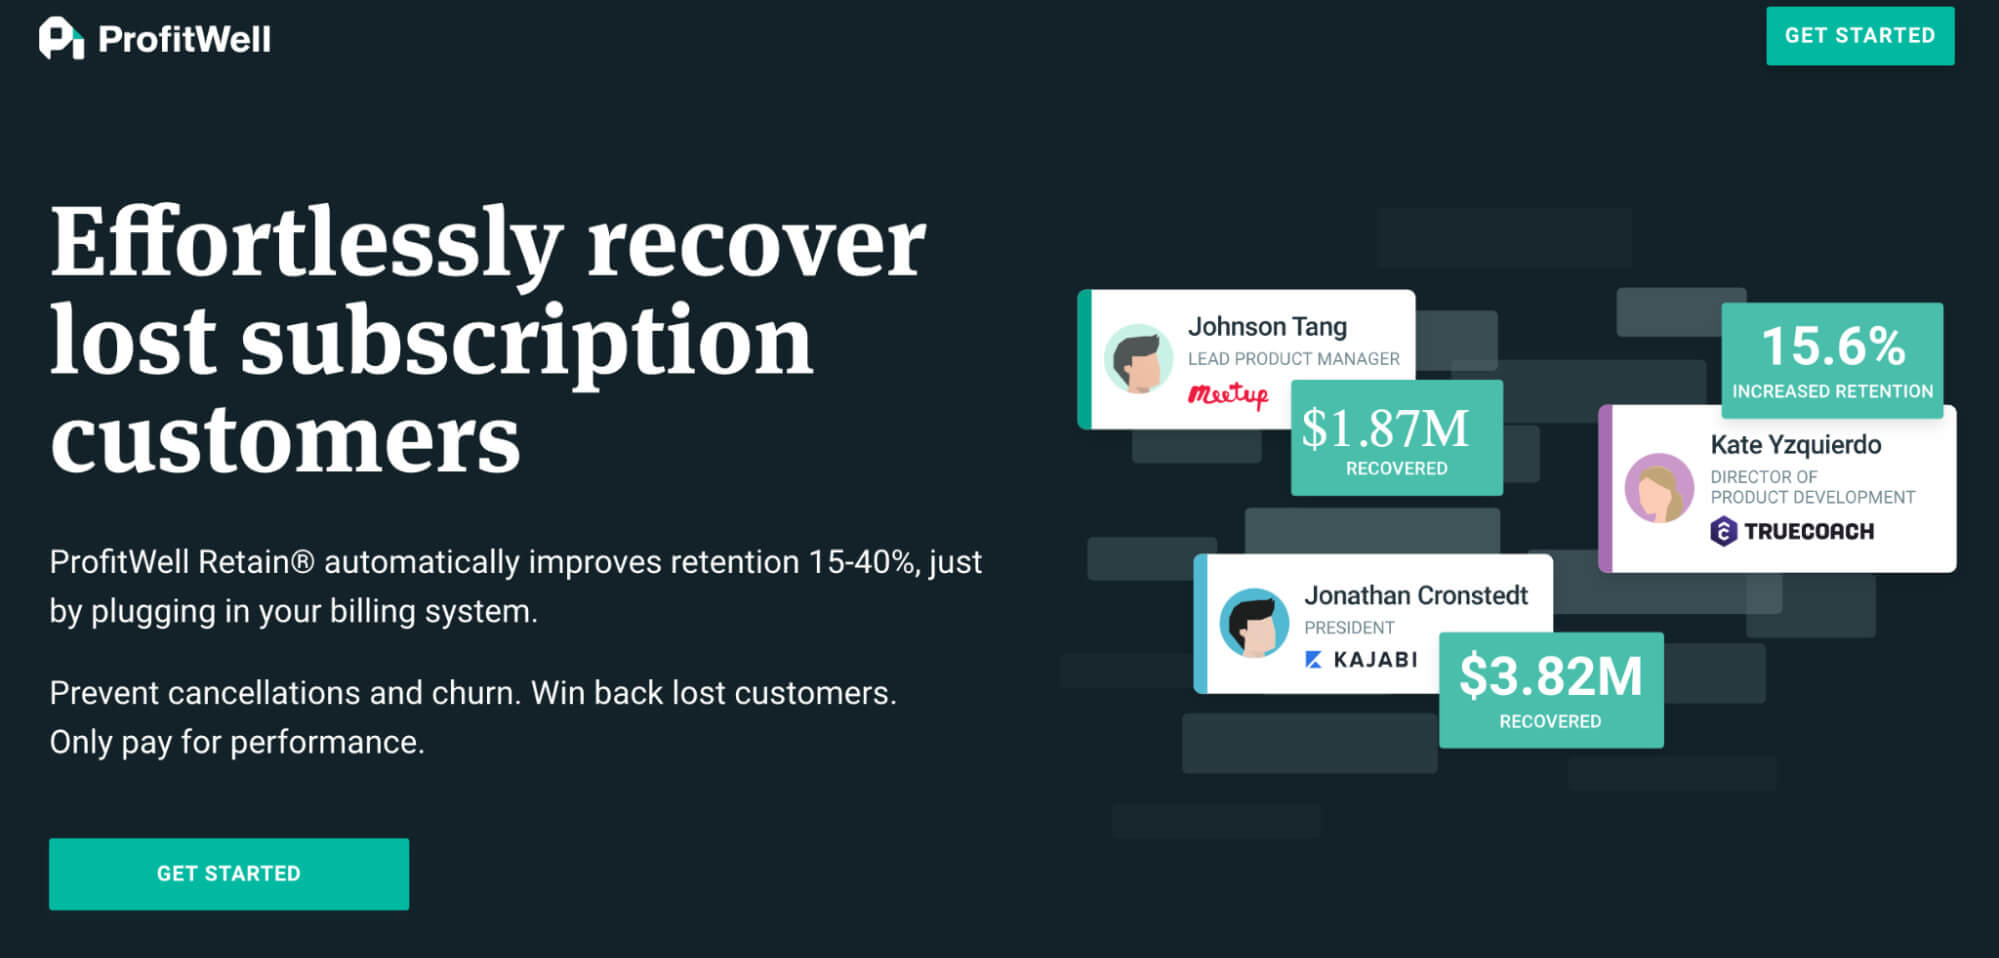 Landing page example from ProfitWell